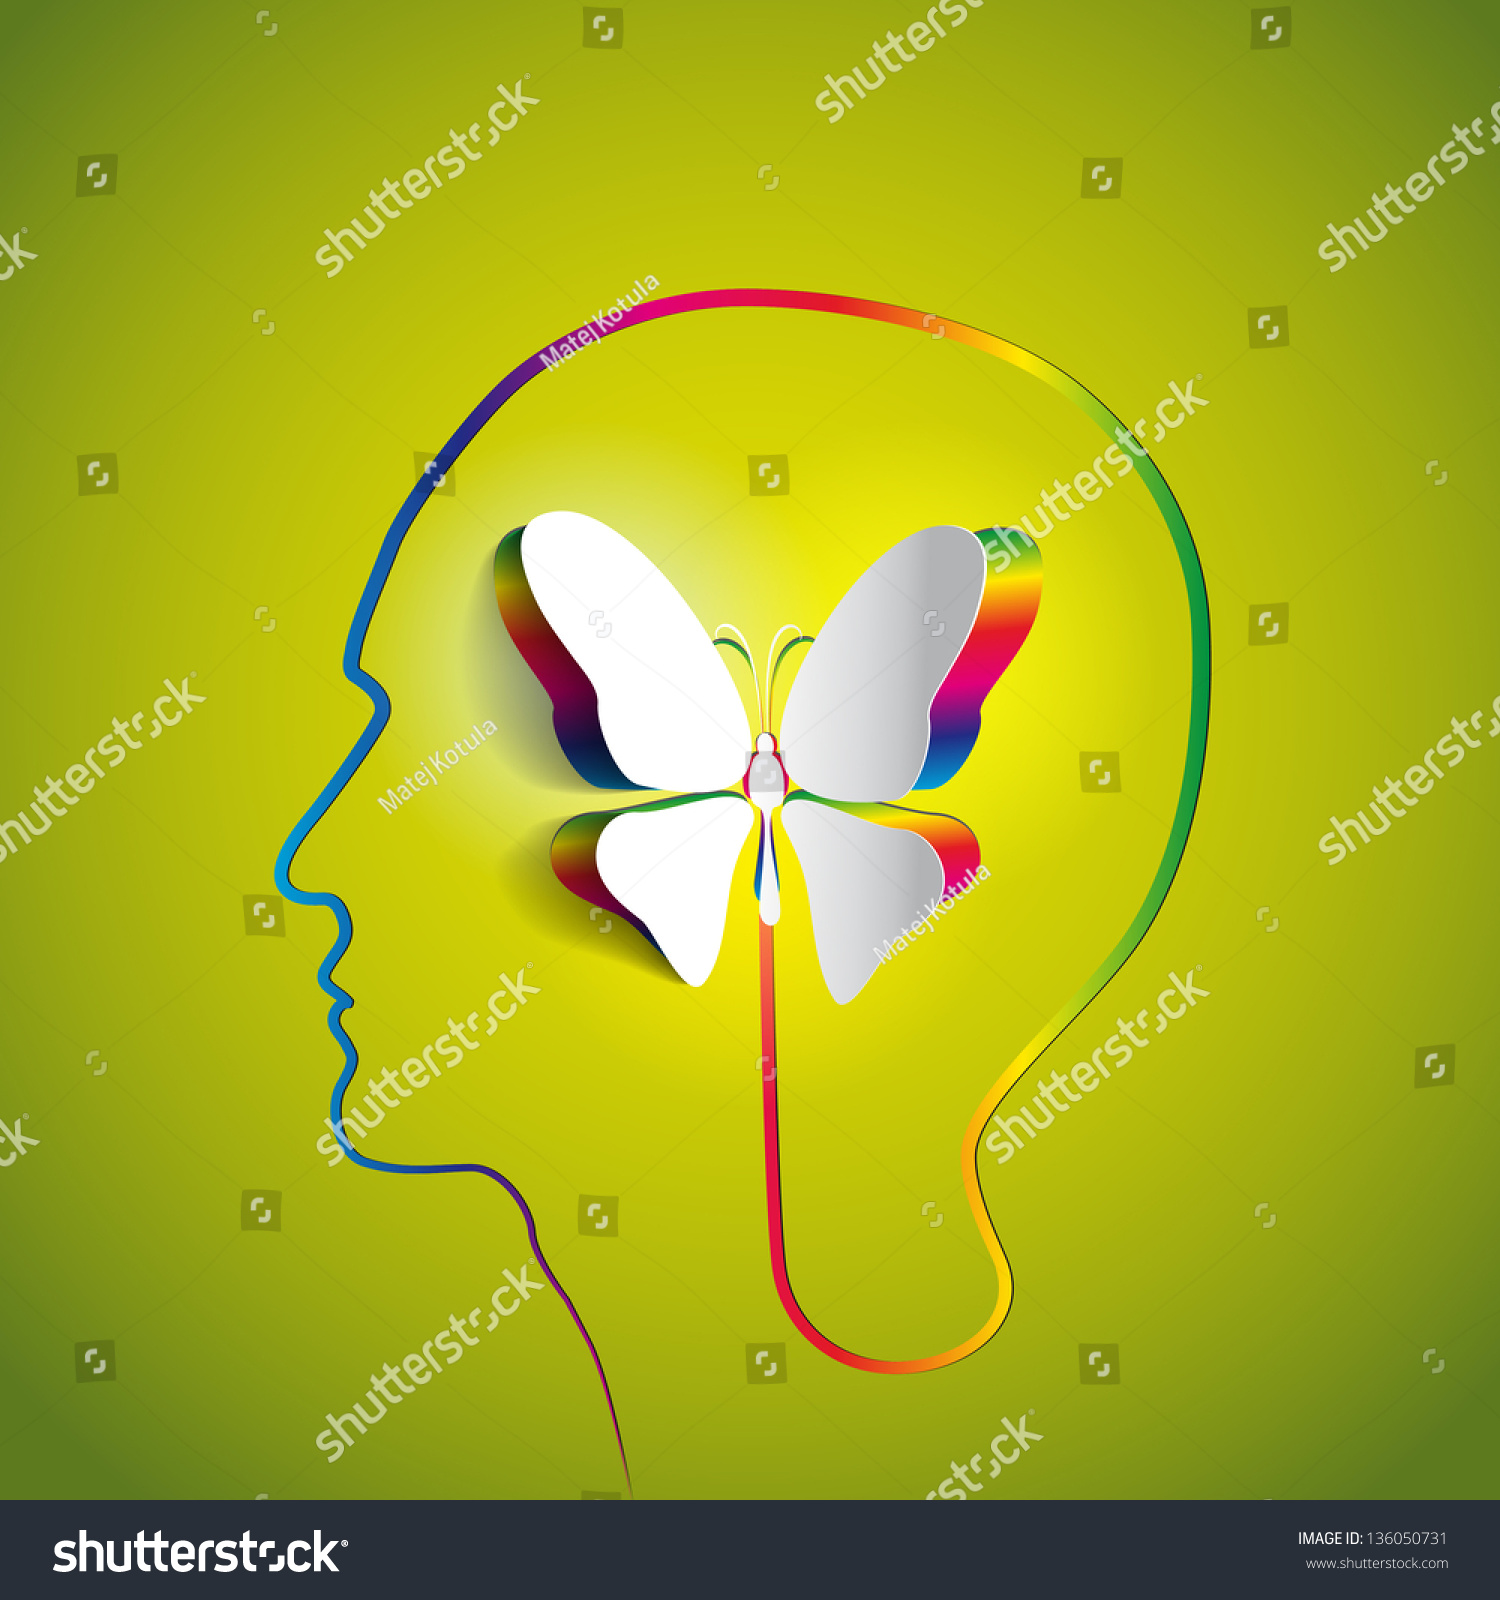 Human head paper butterfly symbol freedom stock vector 136050731 human head with paper butterfly symbol freedom and creativity design concepts biocorpaavc Images